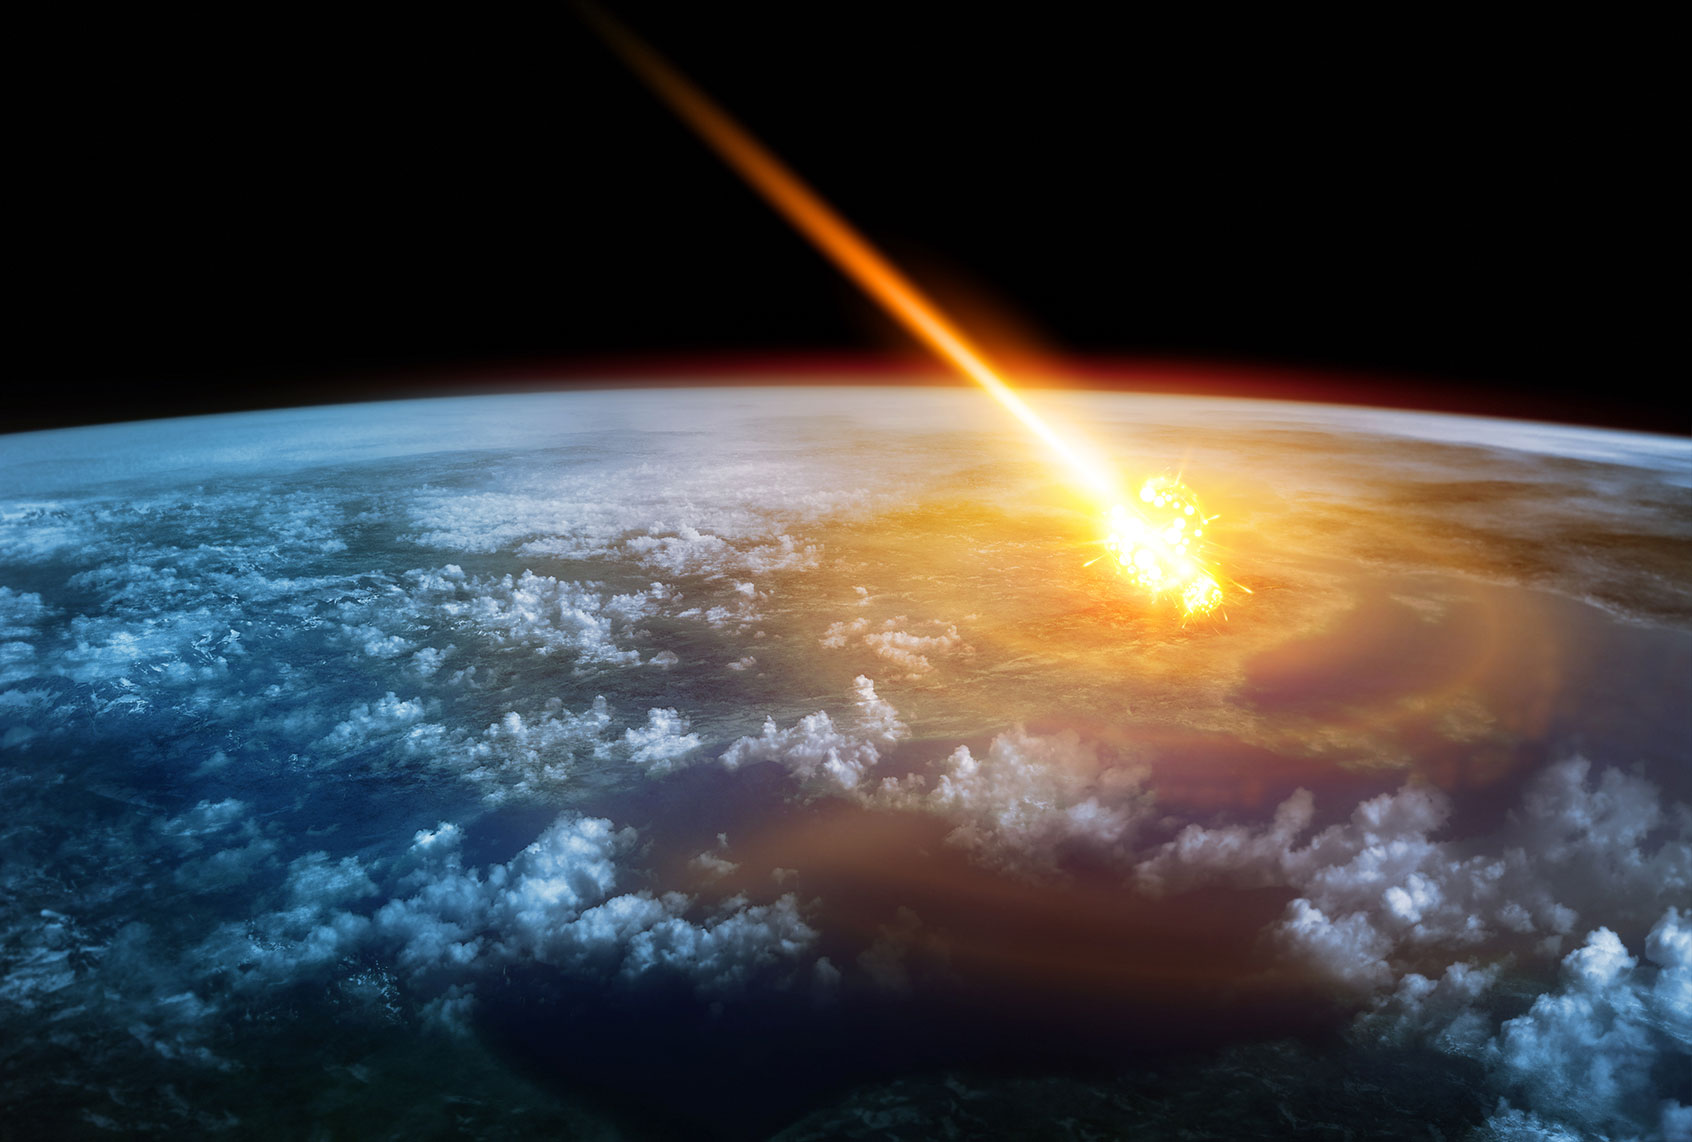 Why some scientists think a comet not an asteroid caused the dinosaurs to go extinct – Salon